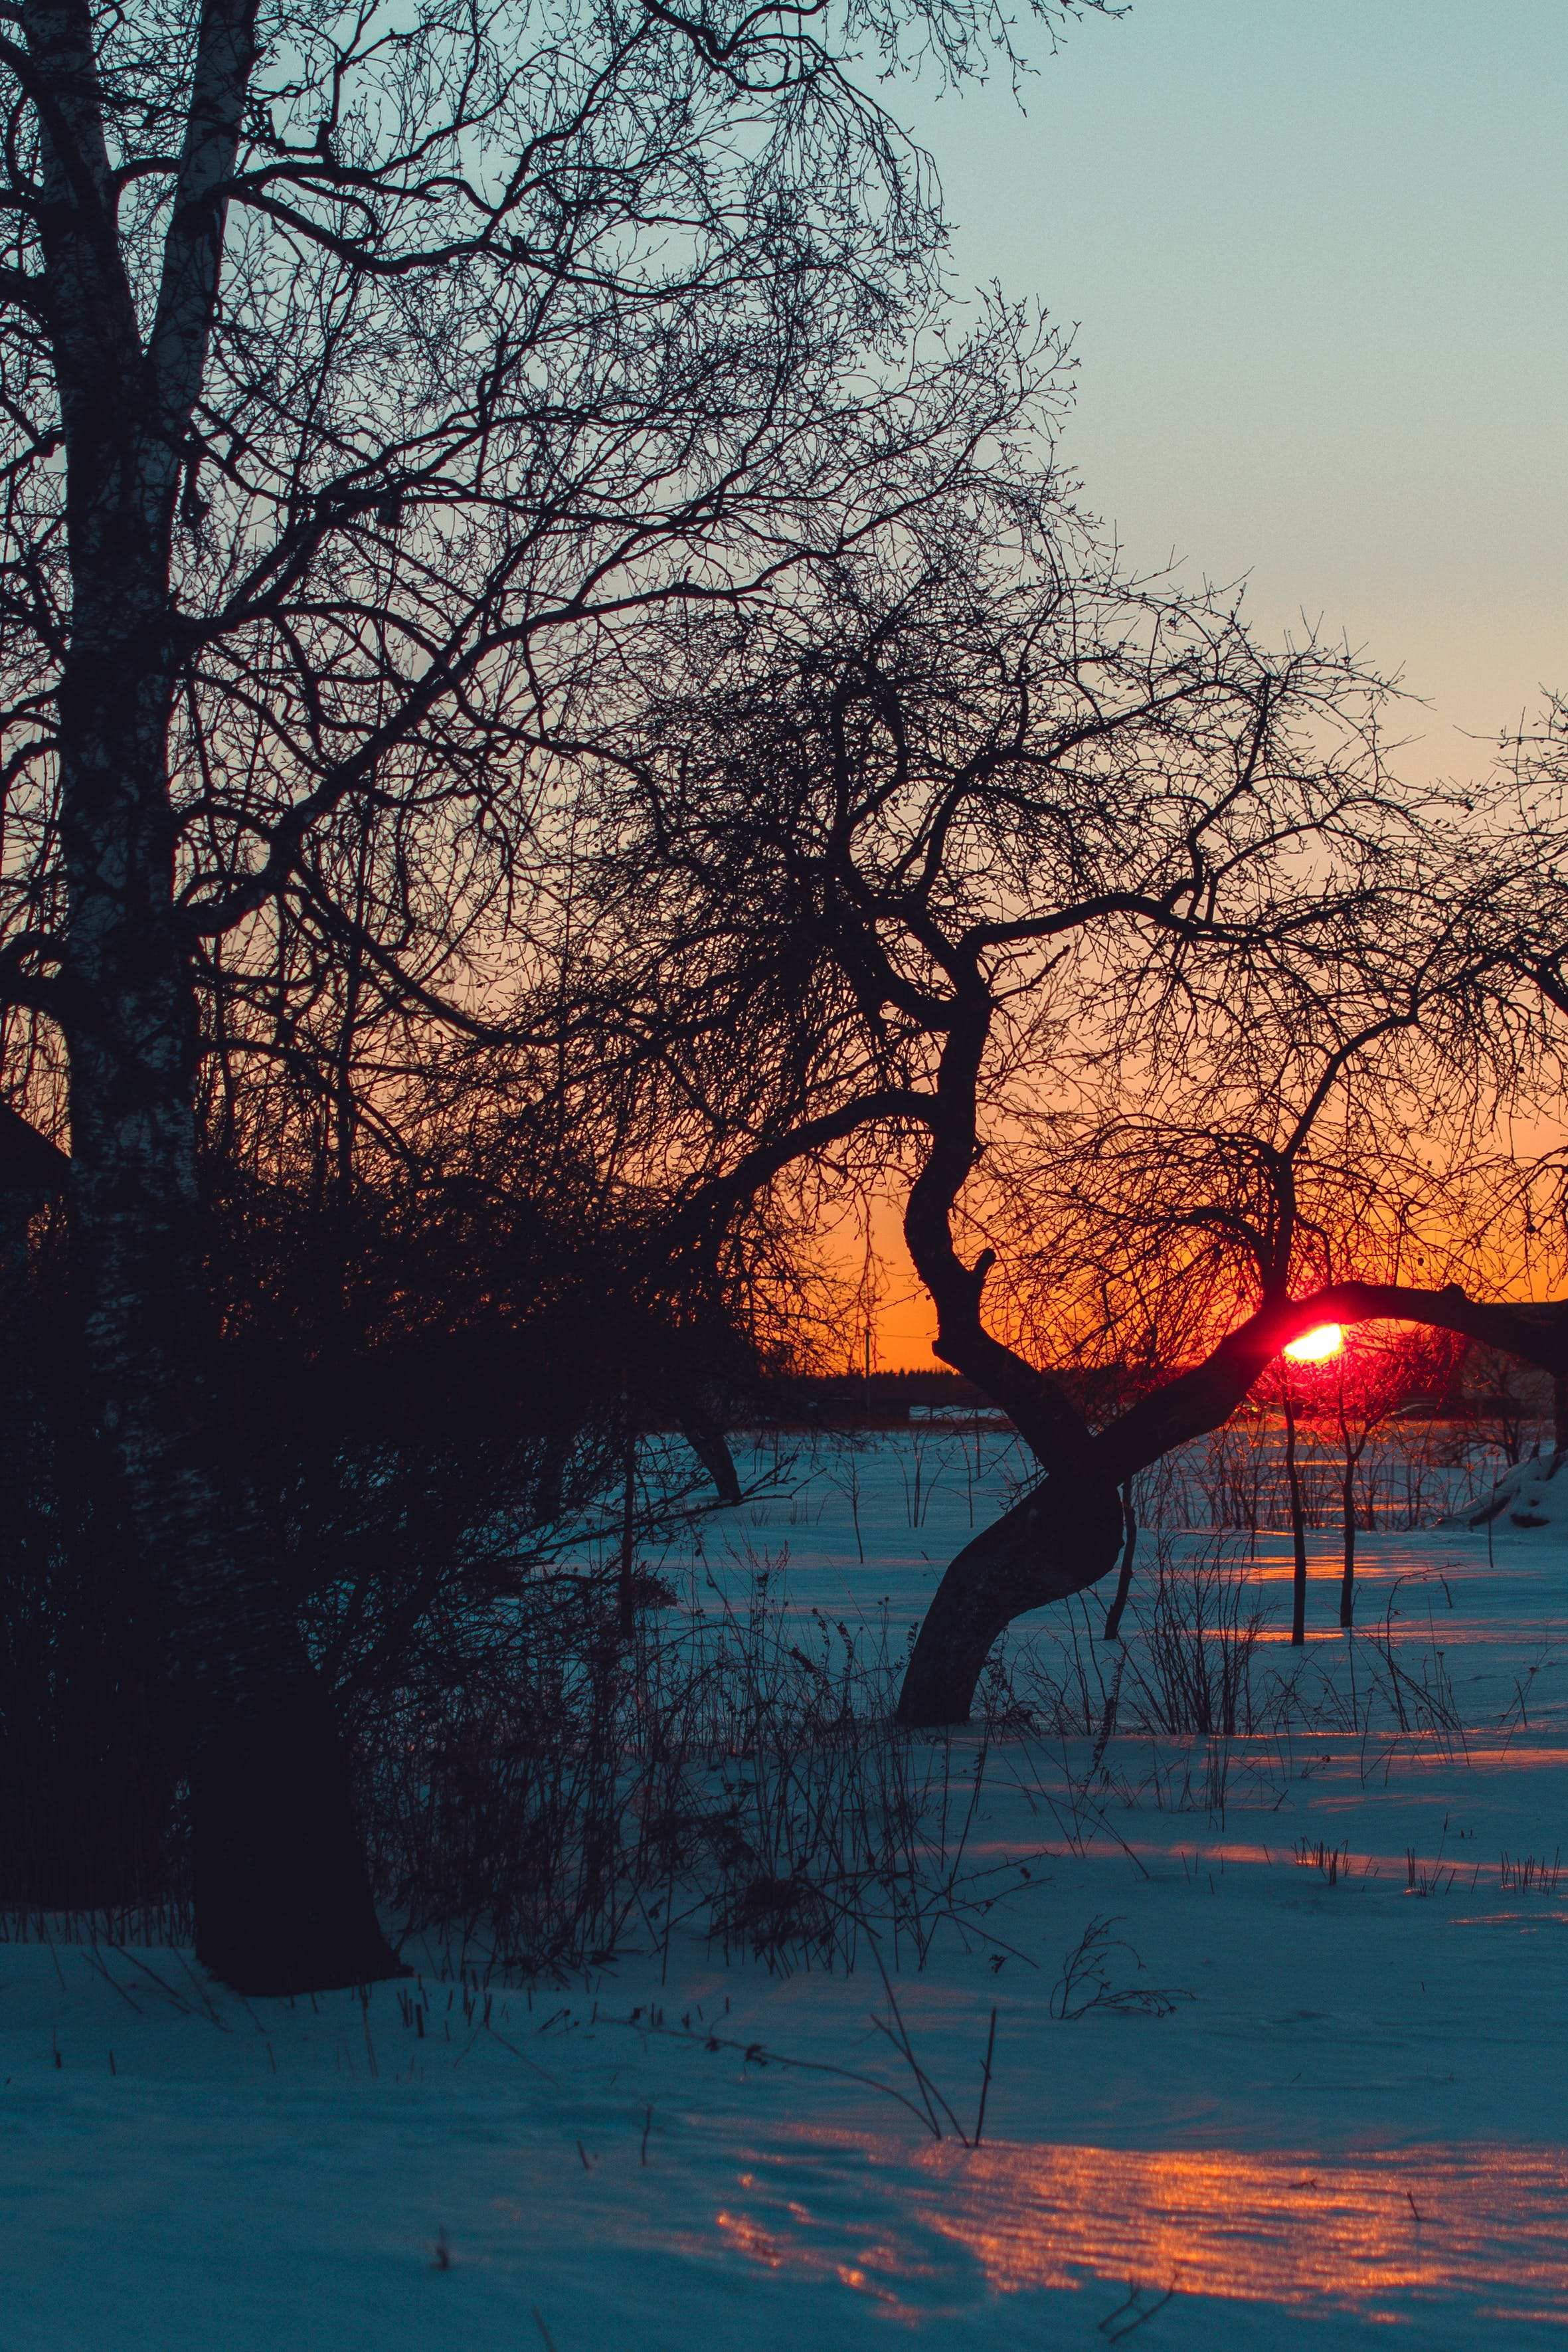 Trees on Snowy Field at Sunset